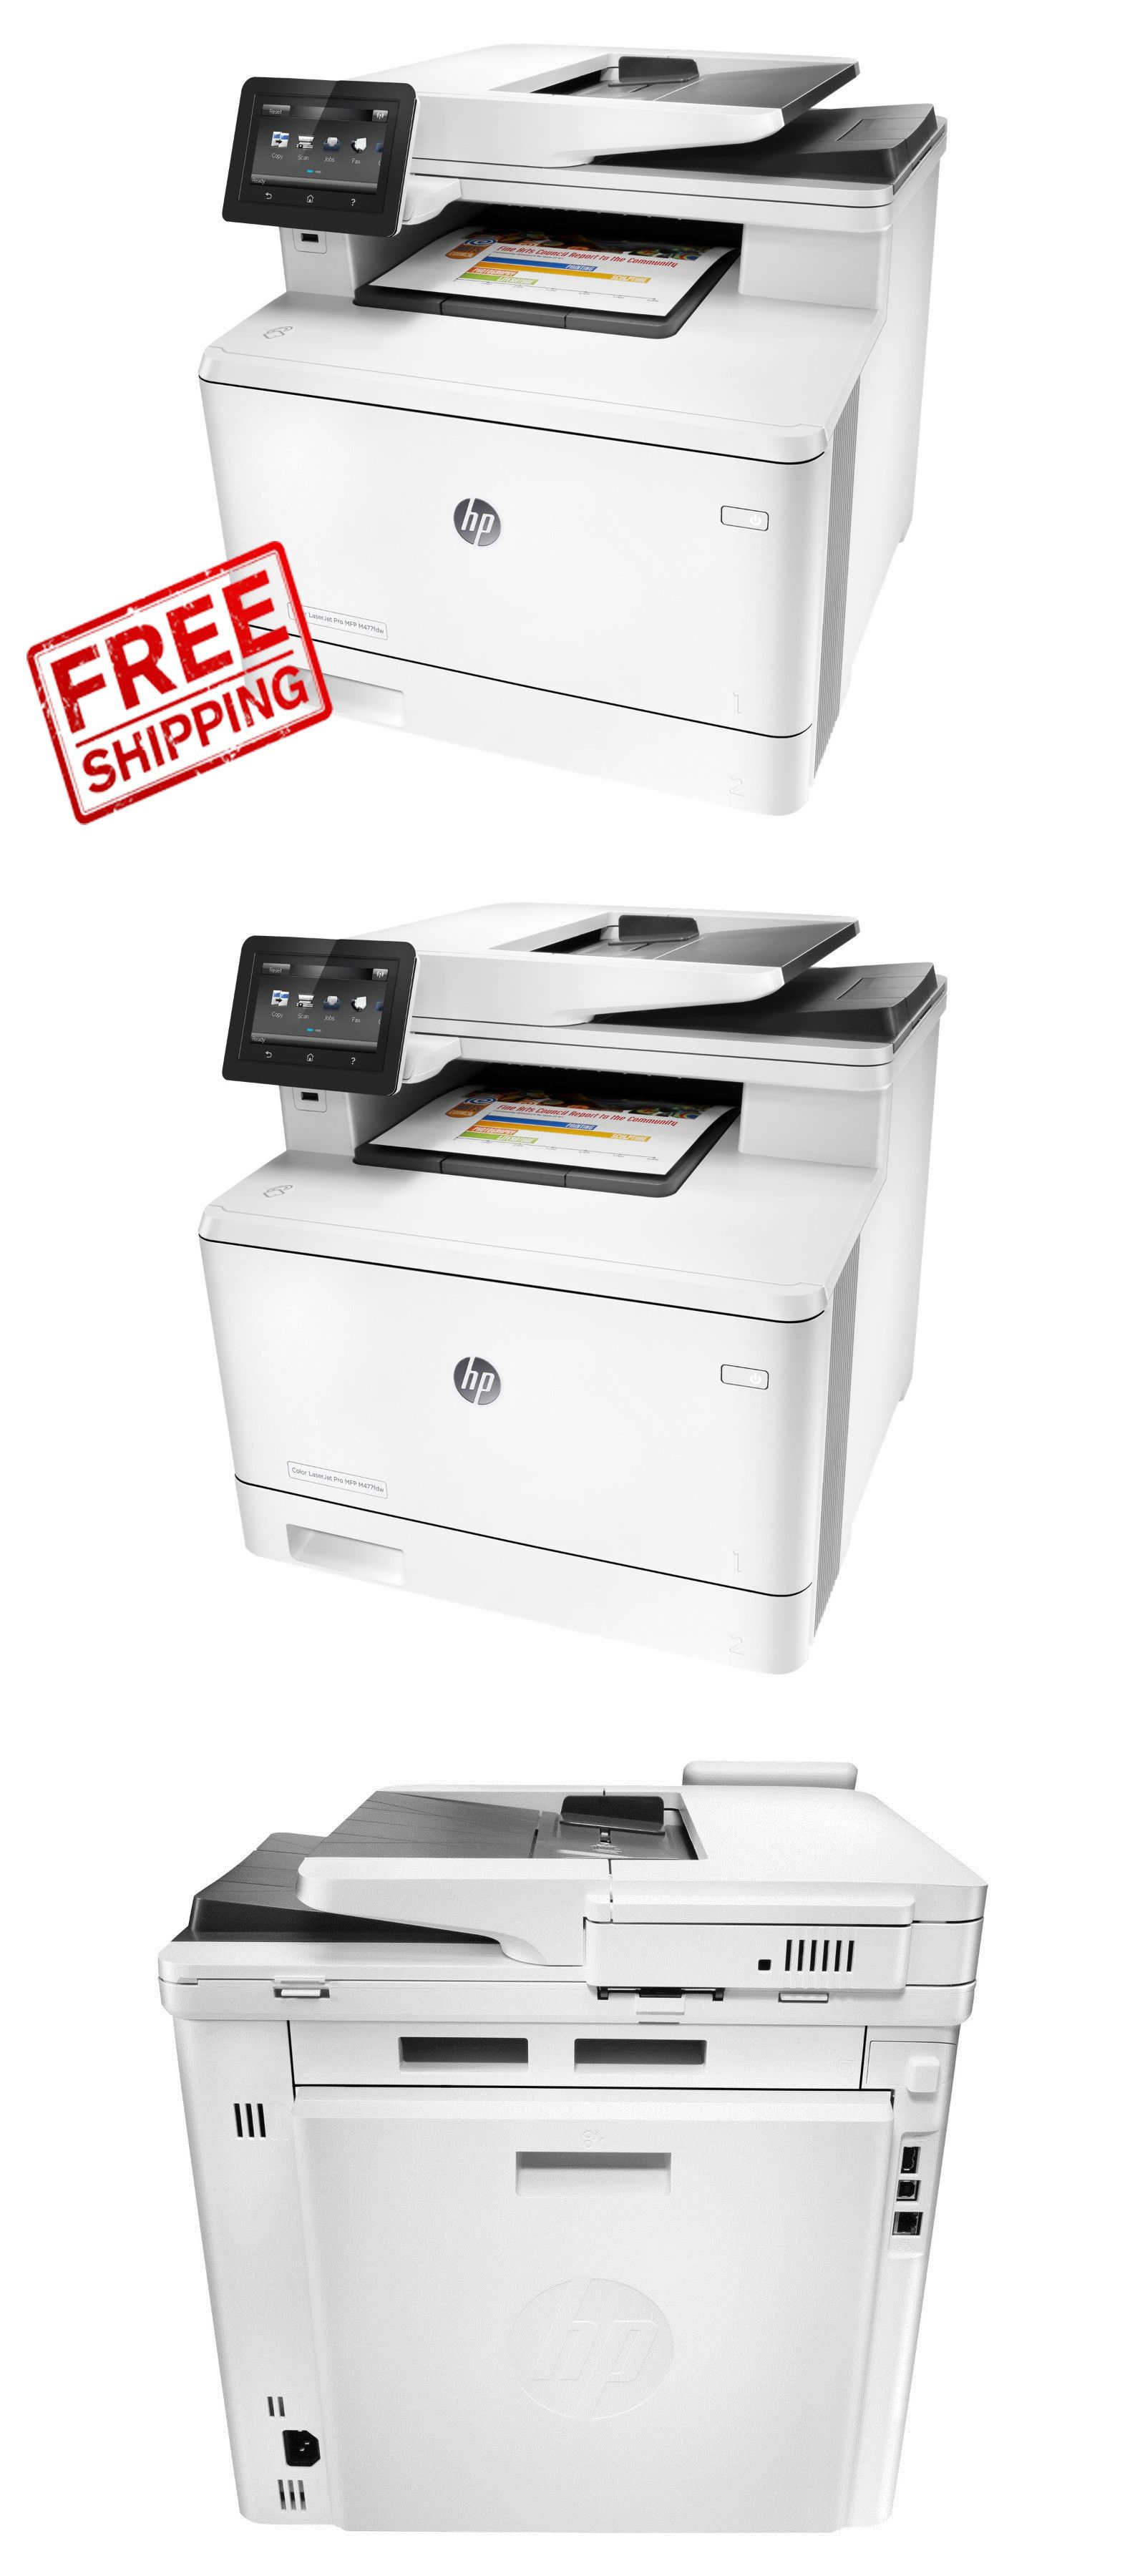 Printers 1245 Brand New Hp Color Laserjet Pro Mfp M477fdw Cf379a Buy It Now Only 423 75 On Ebay Printers Brand Color L Printer Laser Printer Color